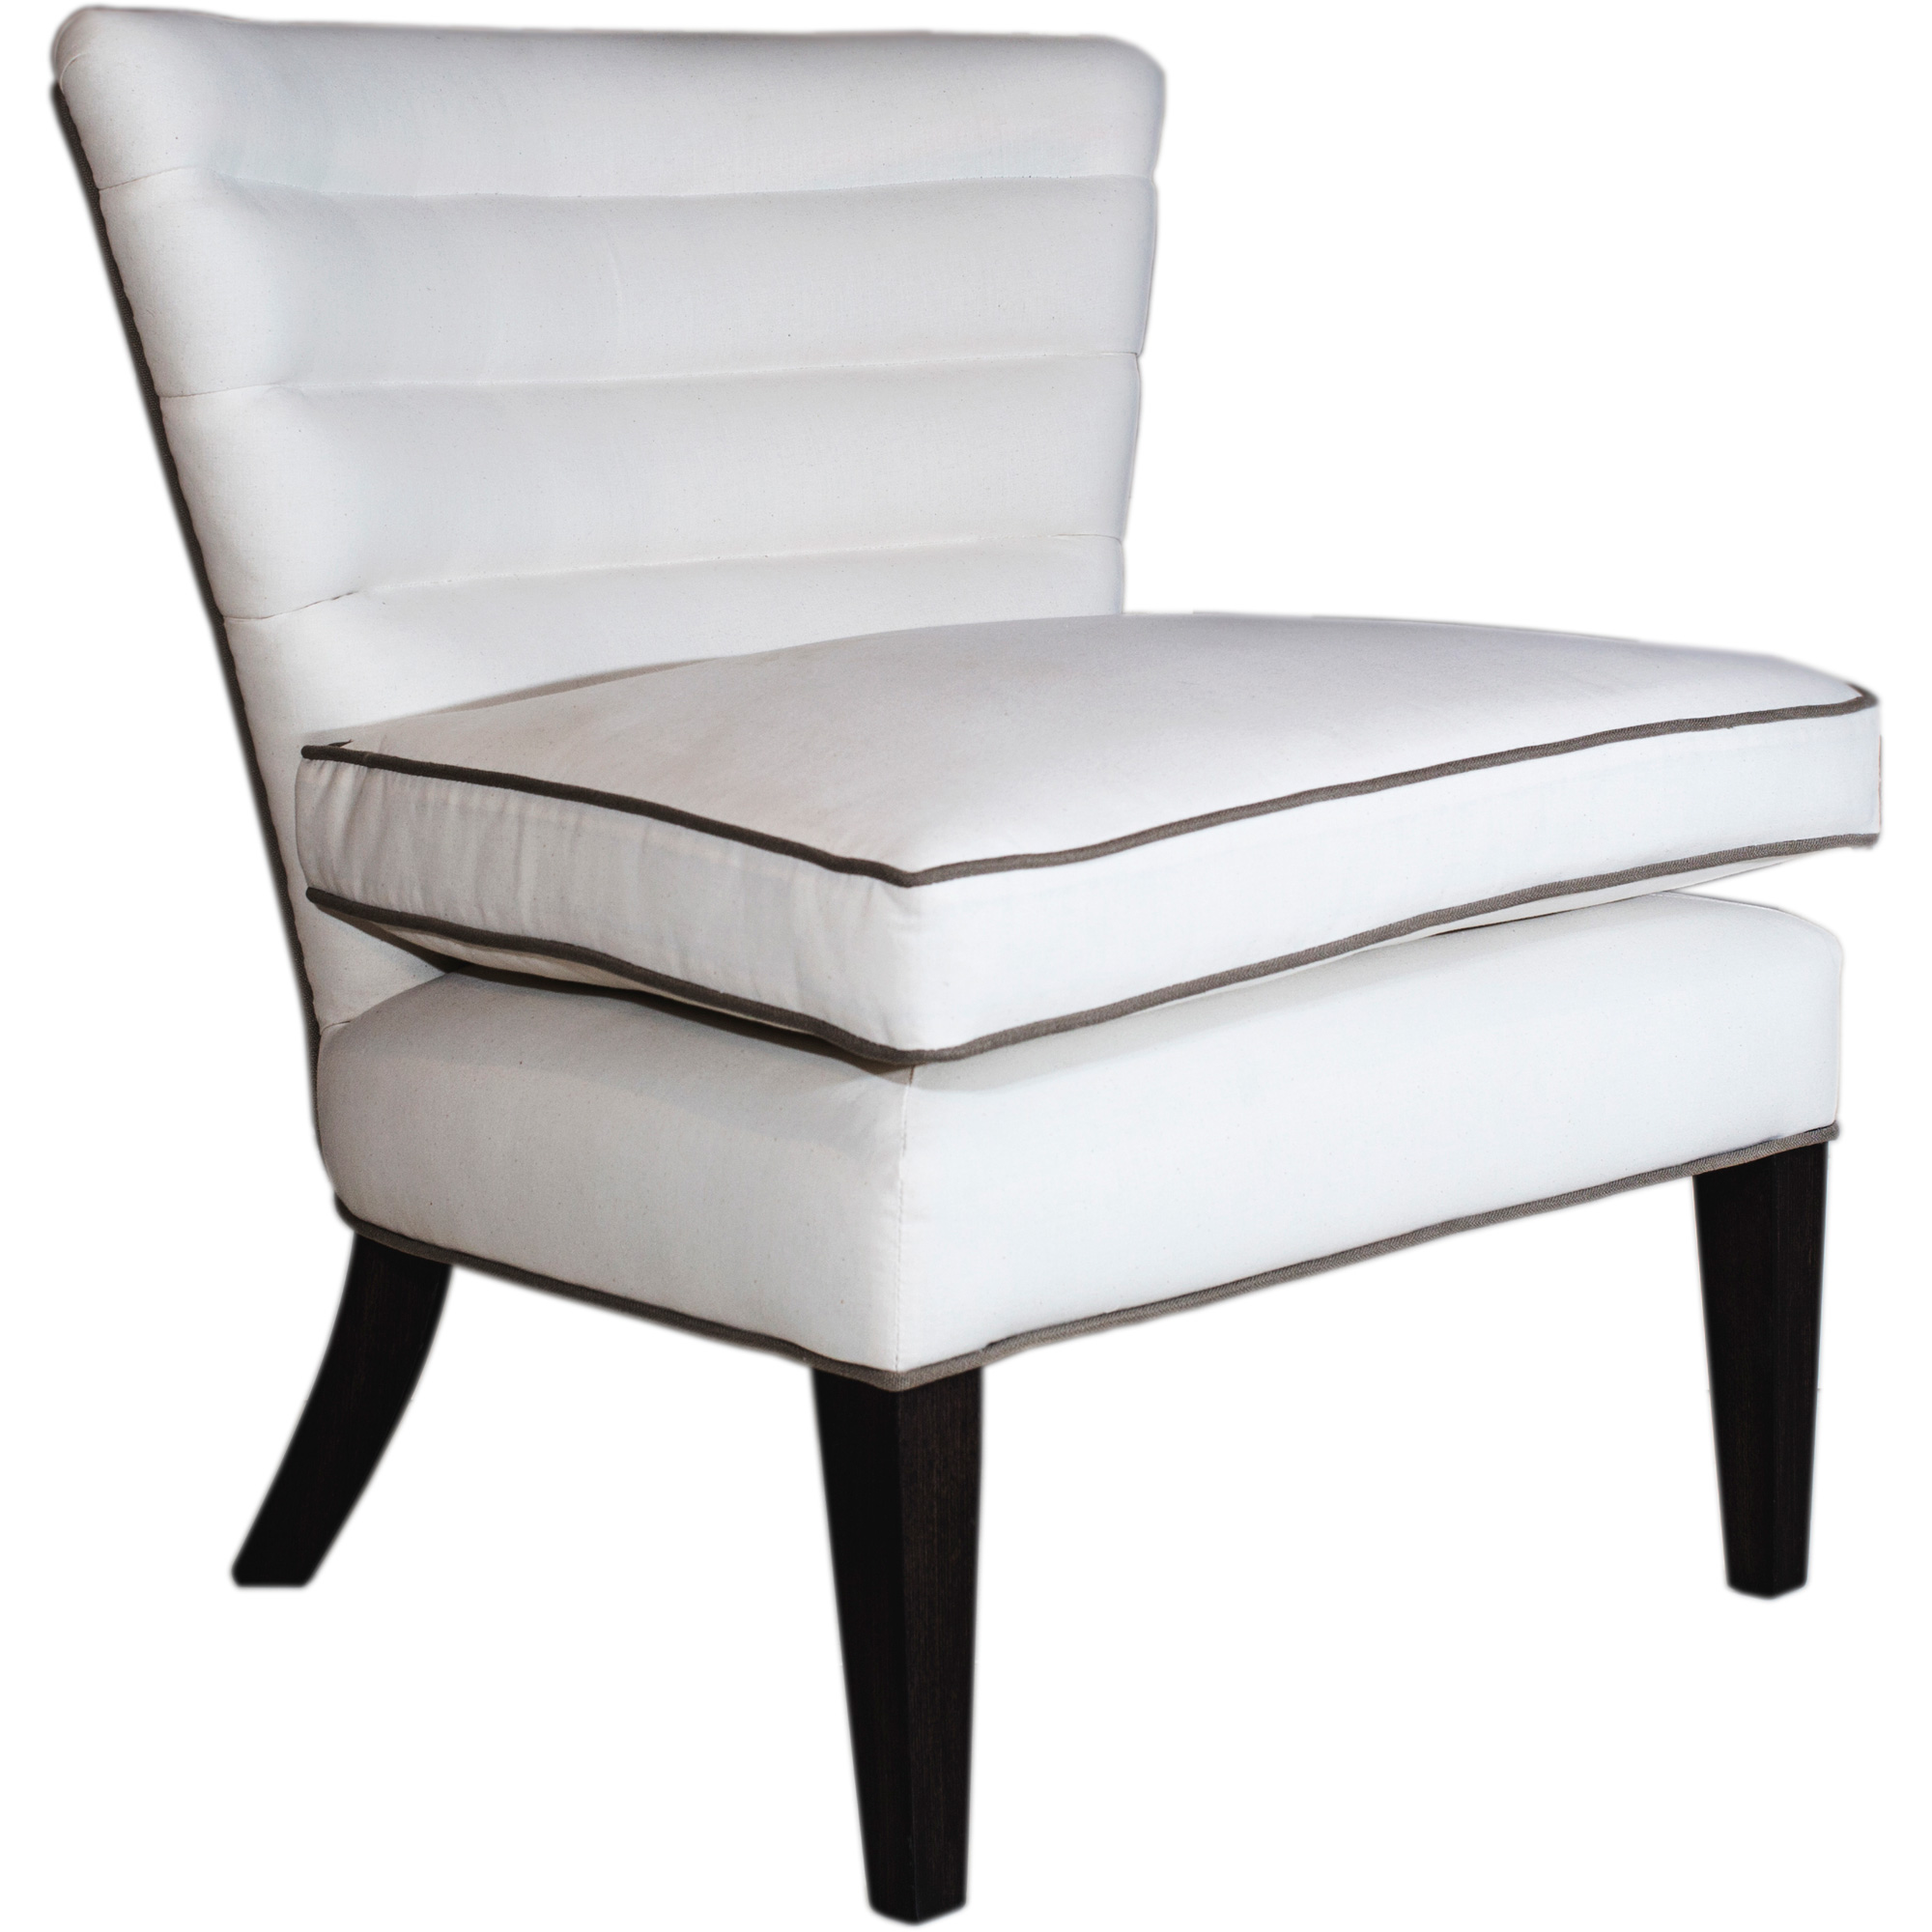 Chiltern Chair Front Right White Background